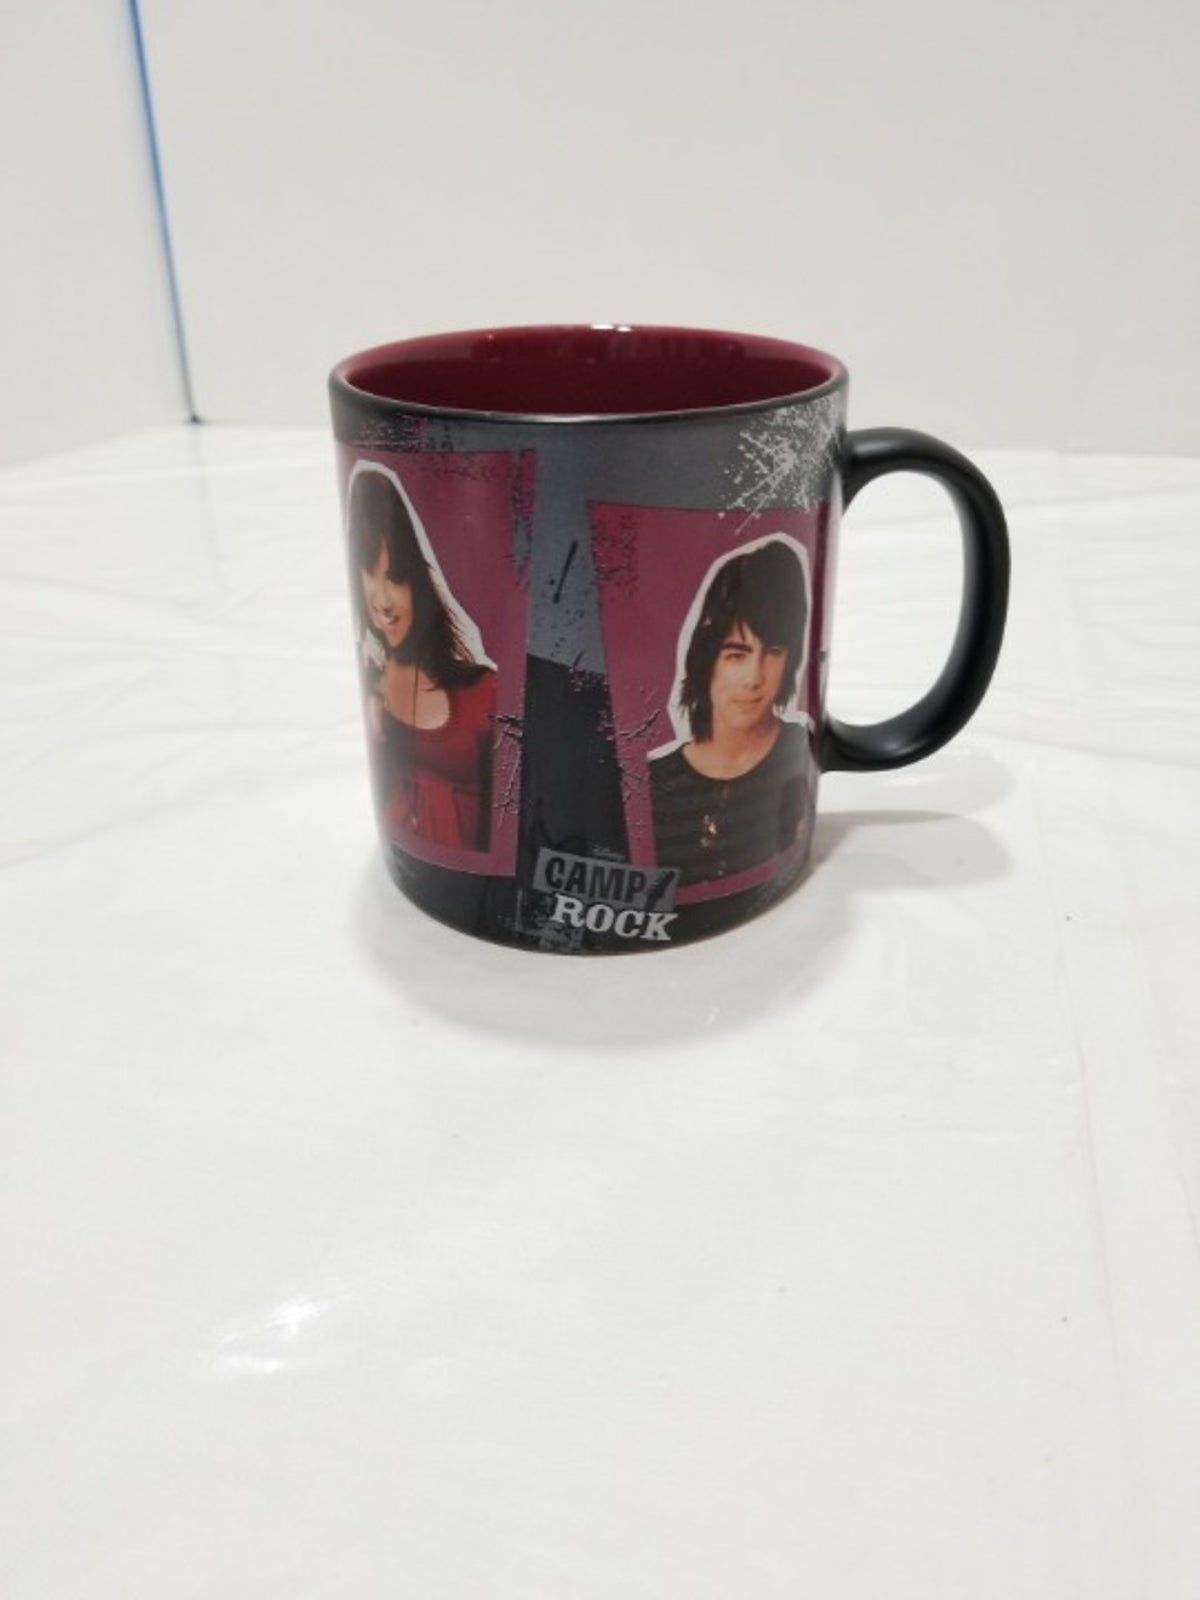 Disney Camp Rock Large Coffee Mug